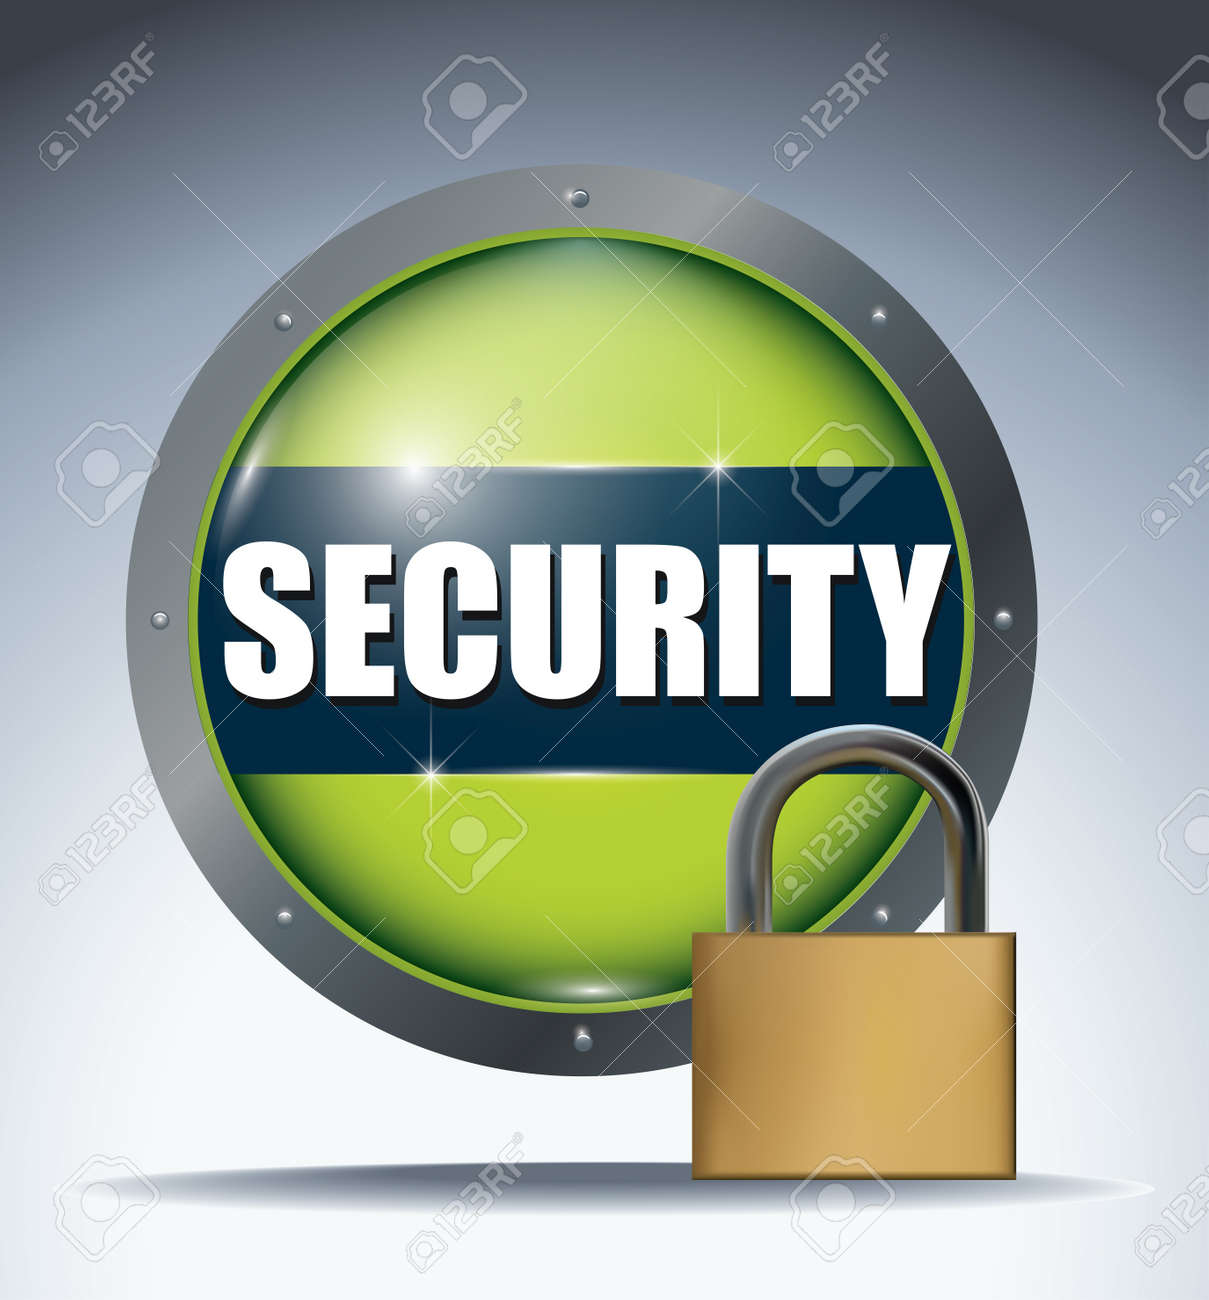 security button Stock Vector - 12174025